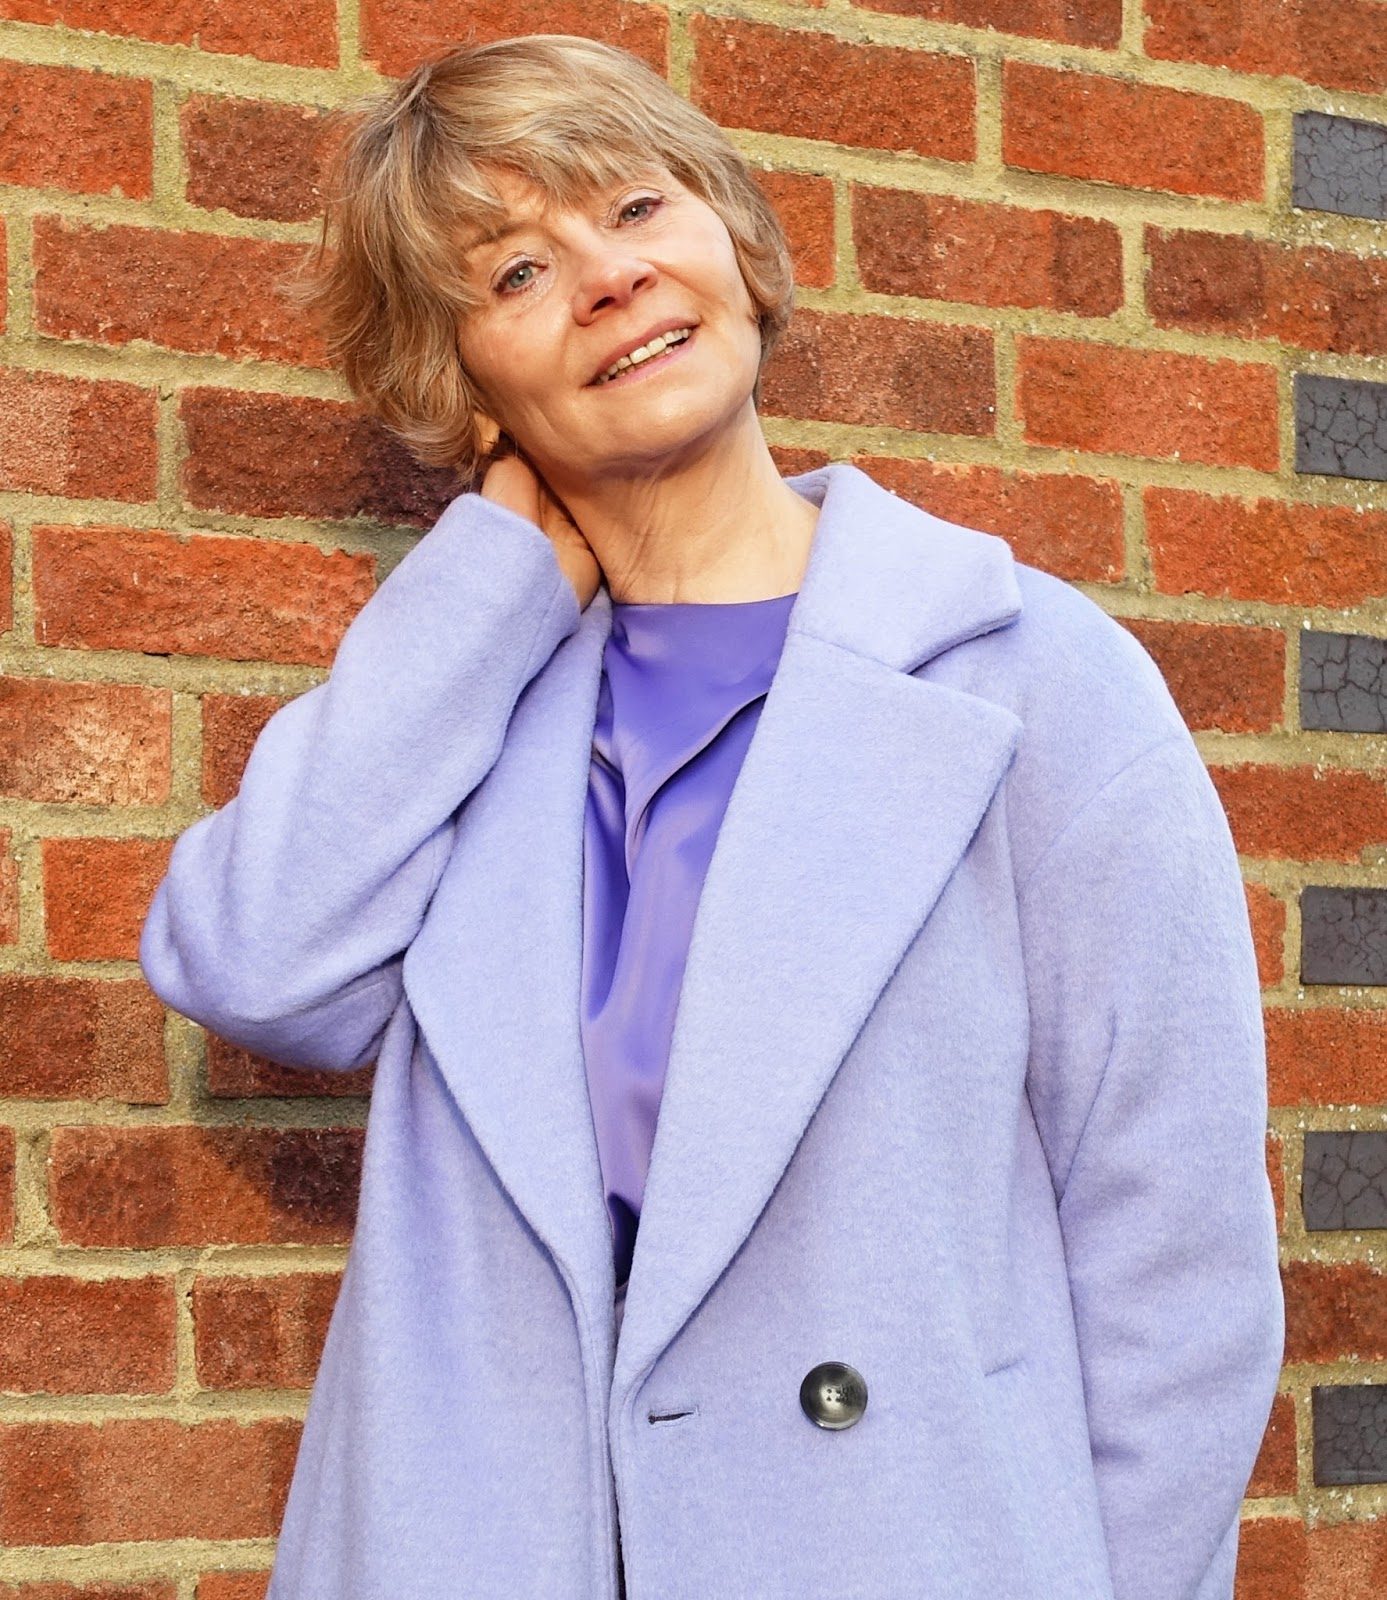 Image showing  a woman with blonde hair over 45 wearing a long wool coat in lilac